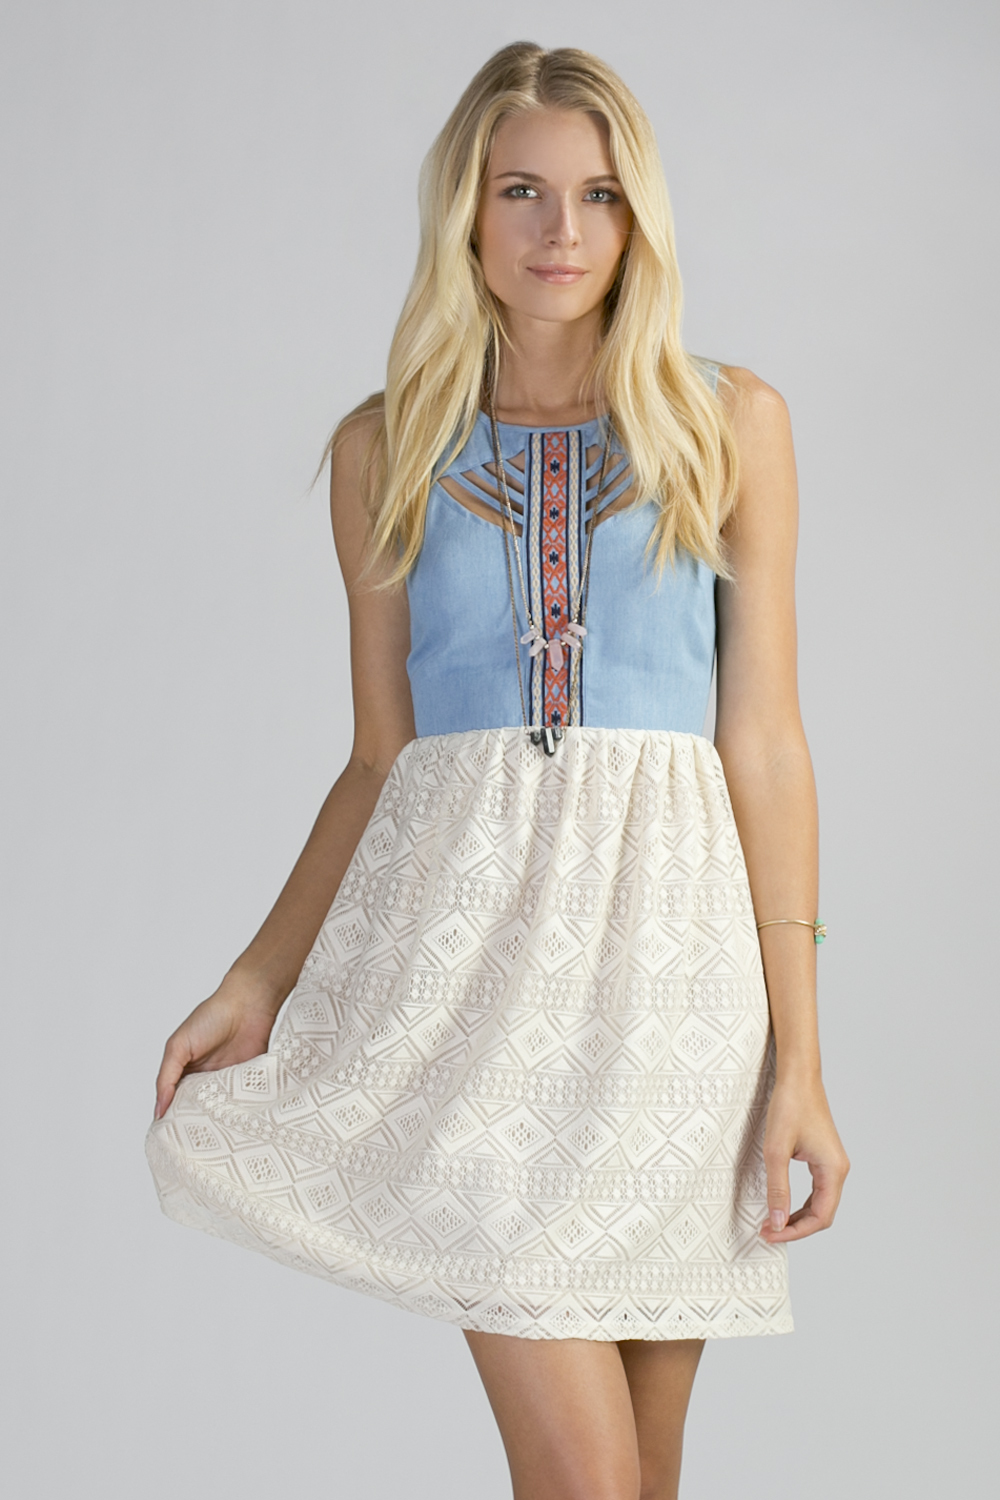 c3184be54 Denim top Ivory Lace Skirt Dress   Belle of the Boulevard   Online ...